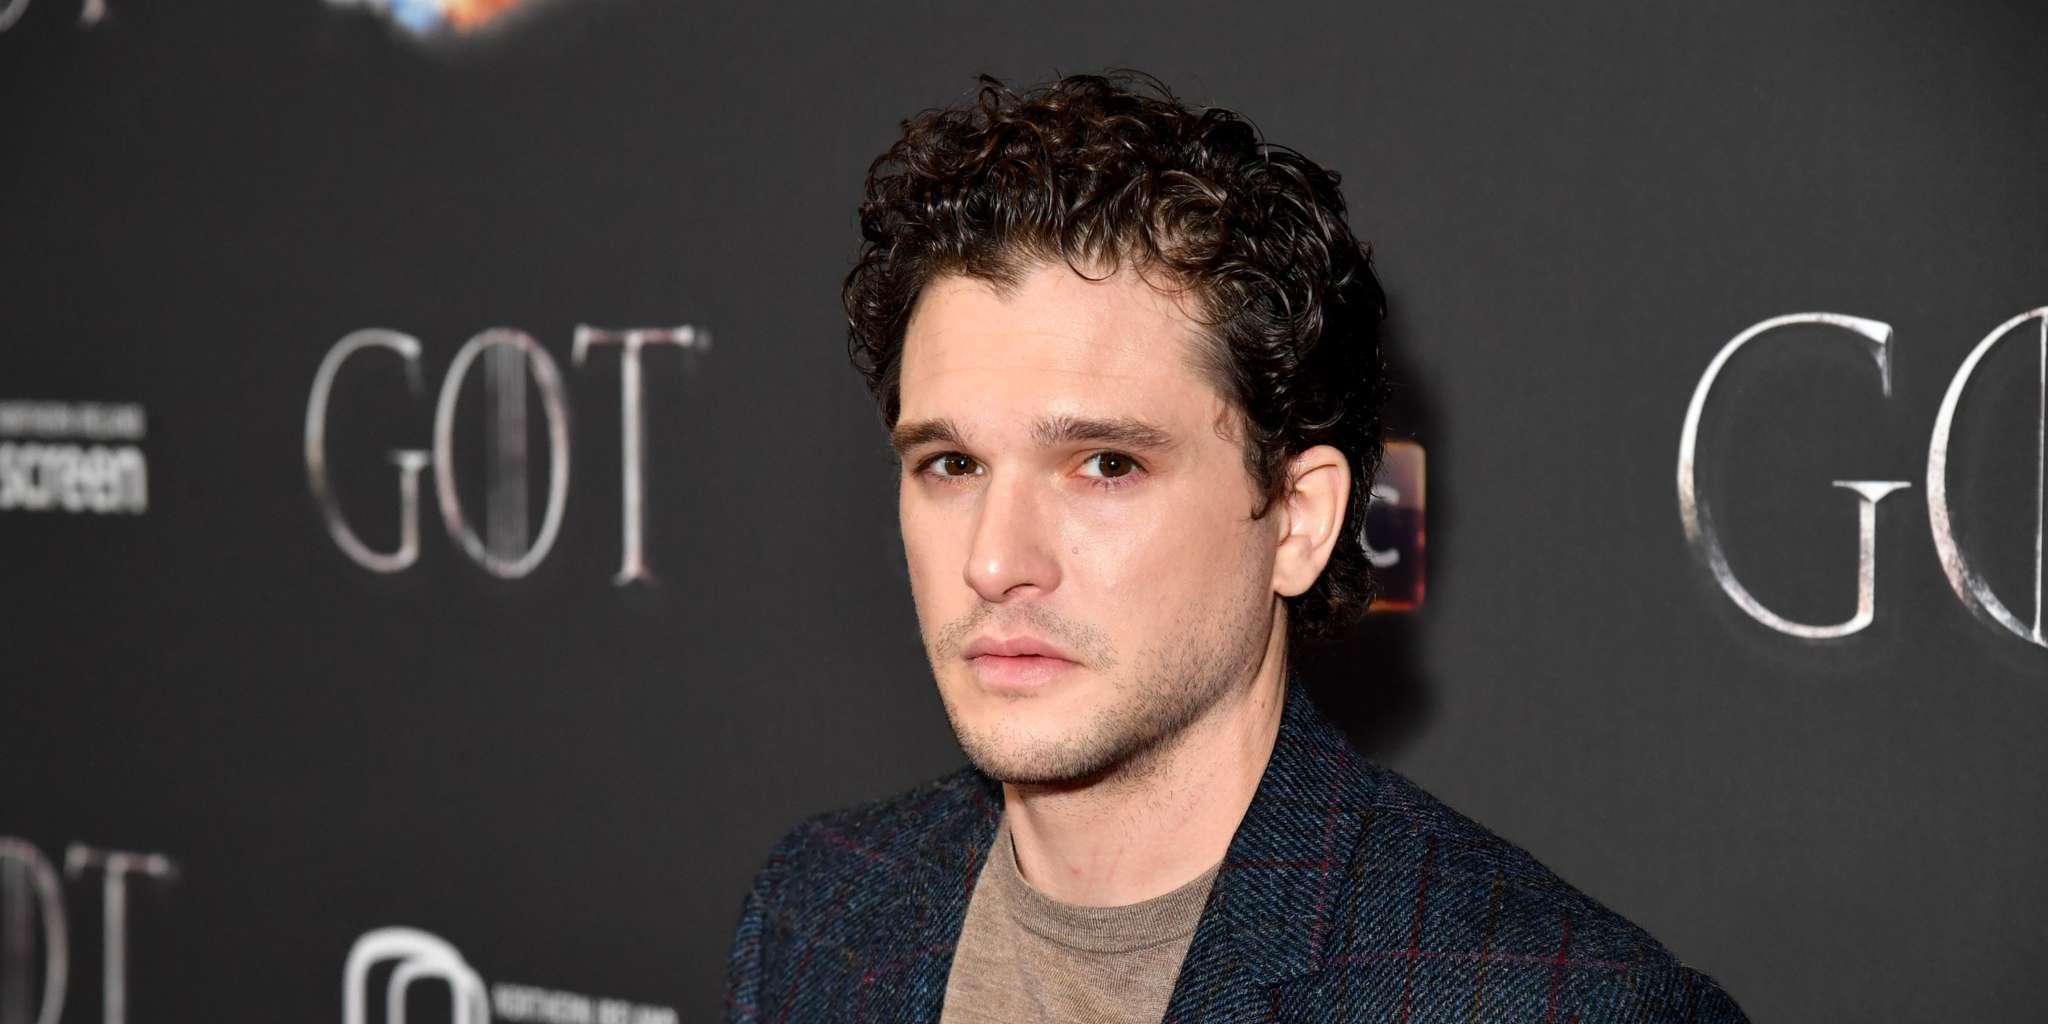 Kit Harington Is In Rehab For Stress And Reported Alcohol Problems Following The Game Of Thrones Finale